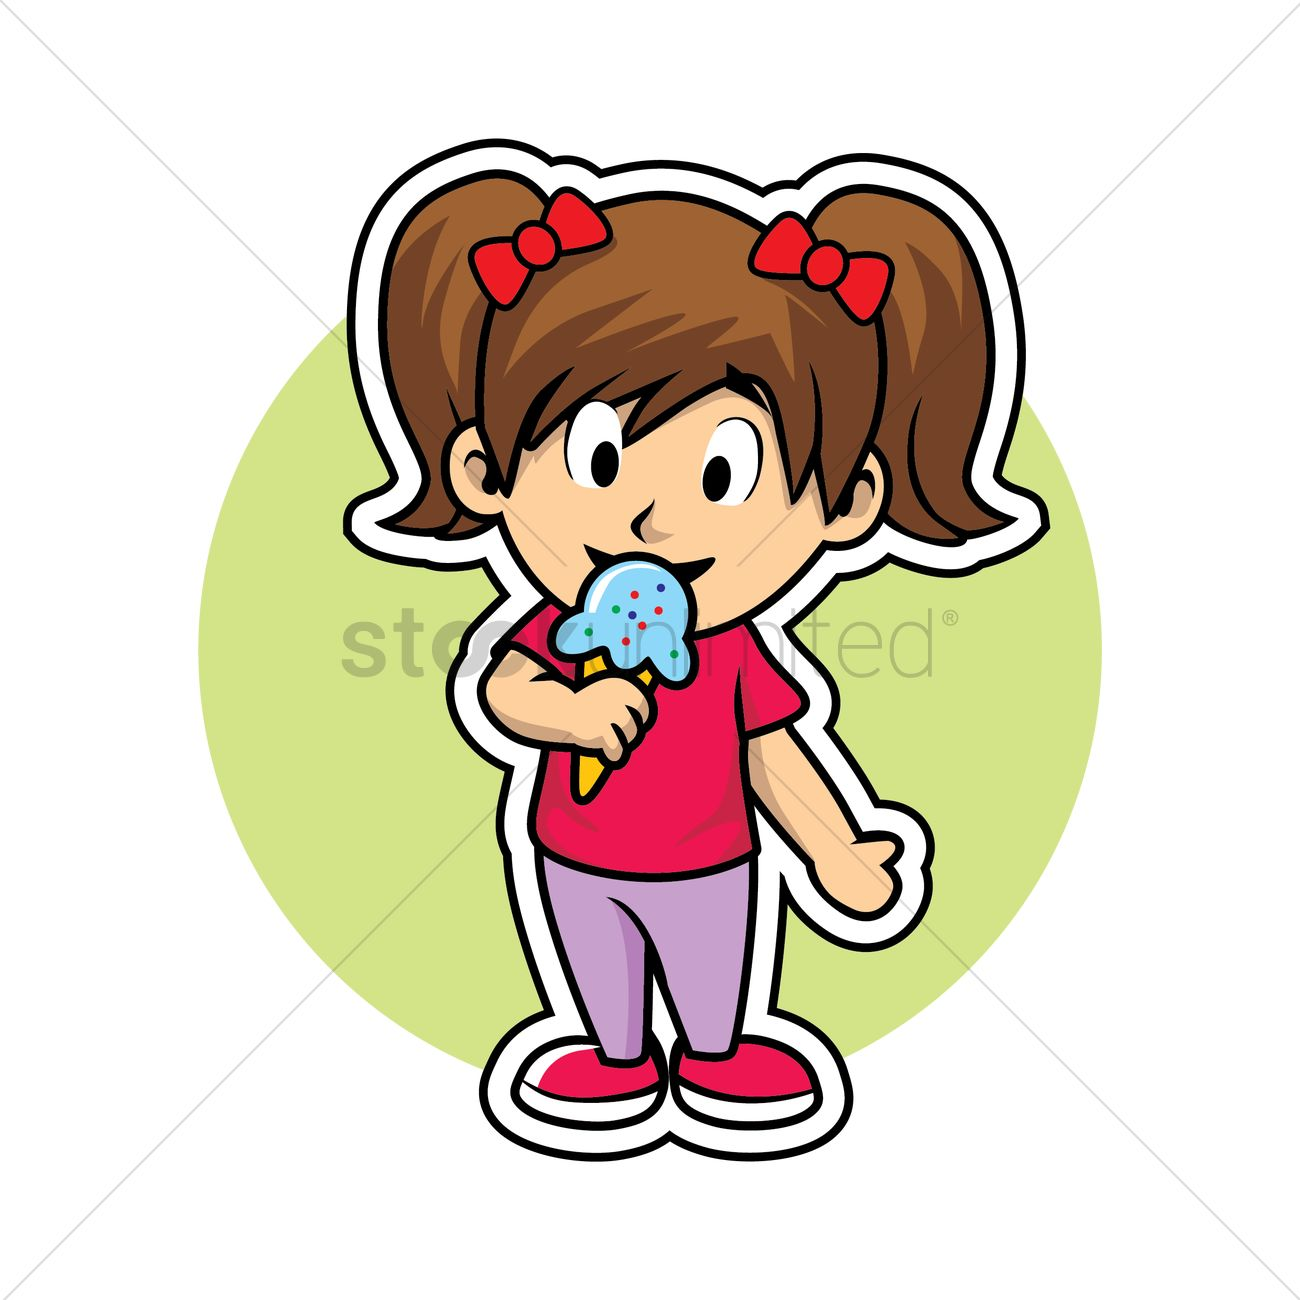 Turkey eating ice cream clipart clip royalty free library Free Girl eating ice cream Vector Image - 1336574 ... clip royalty free library